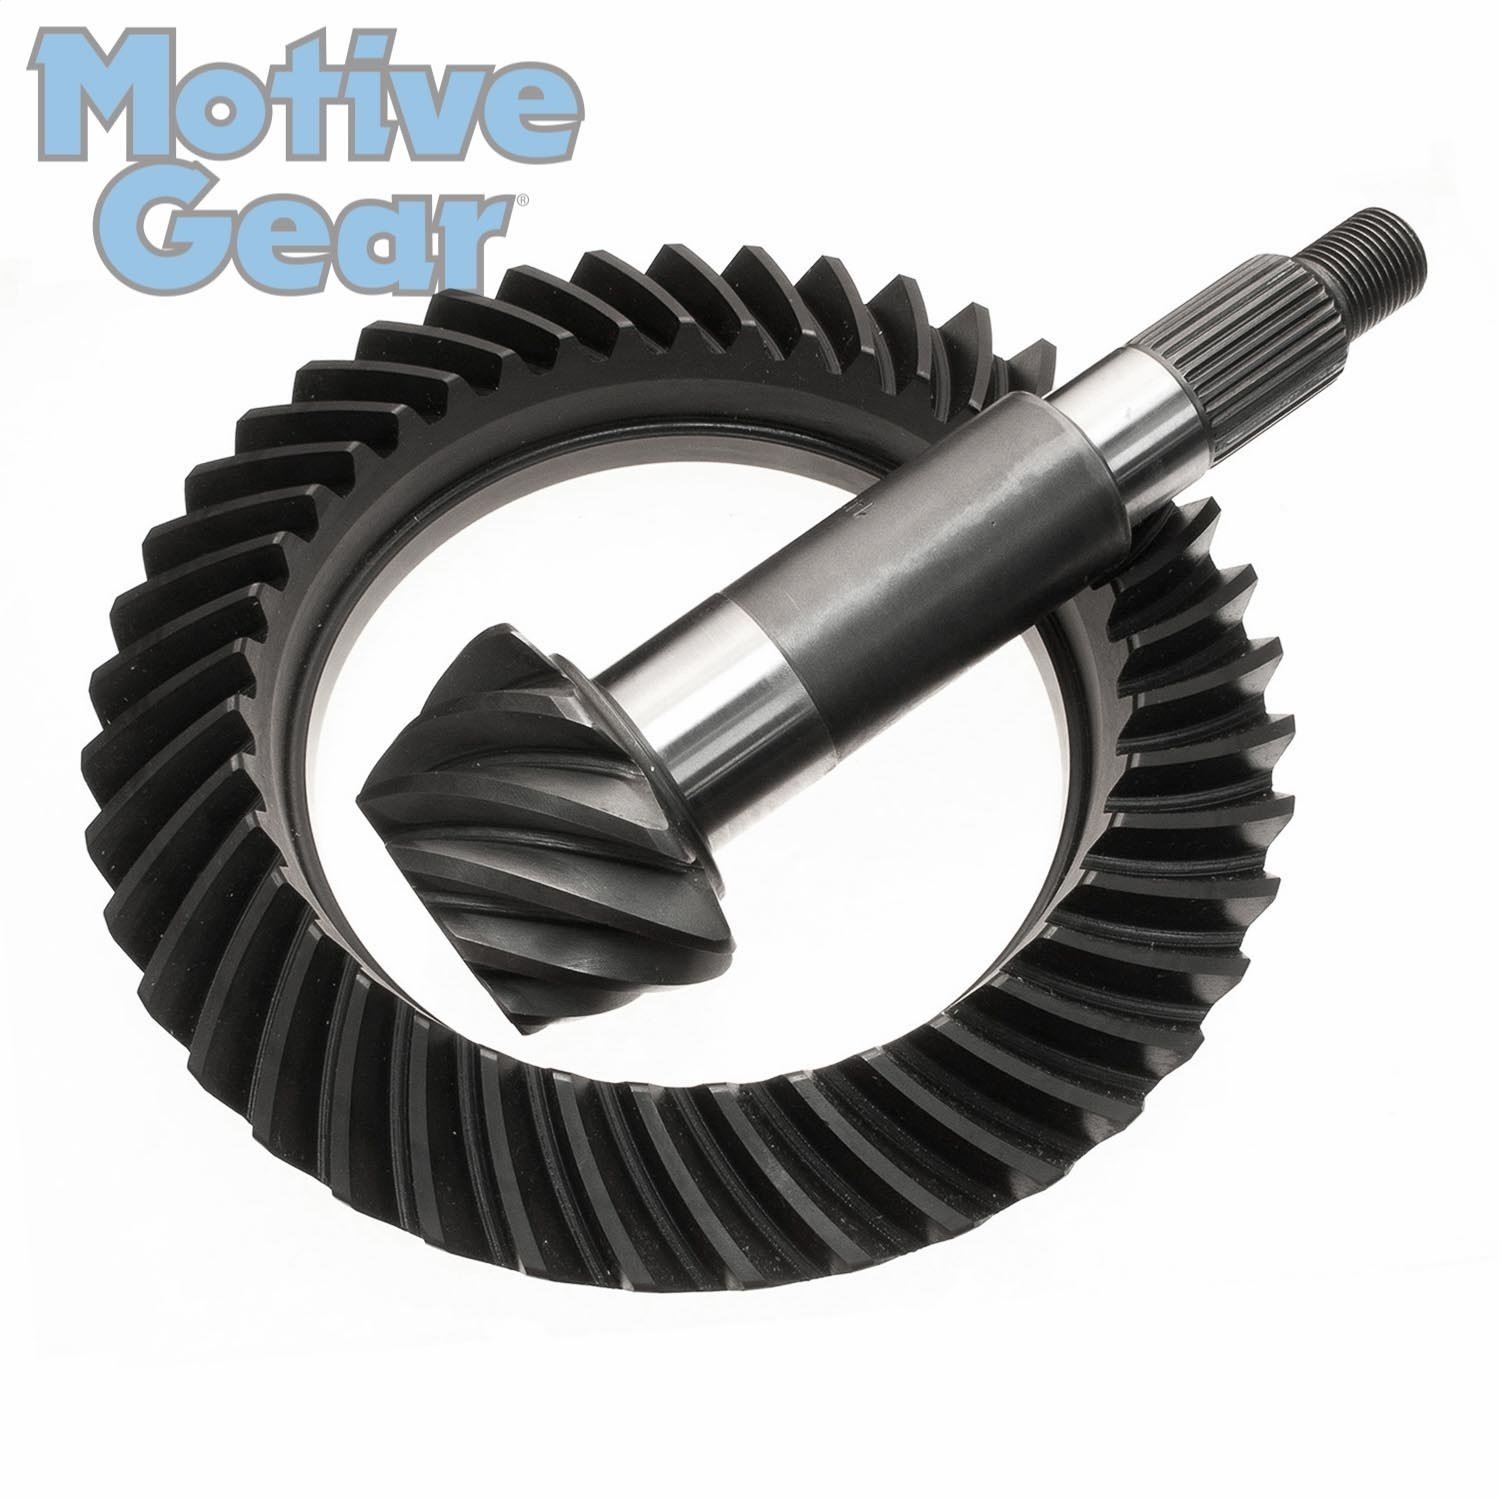 Performance Ring and Pinion Differential Set Dana 60 Reverse//High Pinion D60-538XF 5.38 Ratio 43-8 Teeth Motive Gear